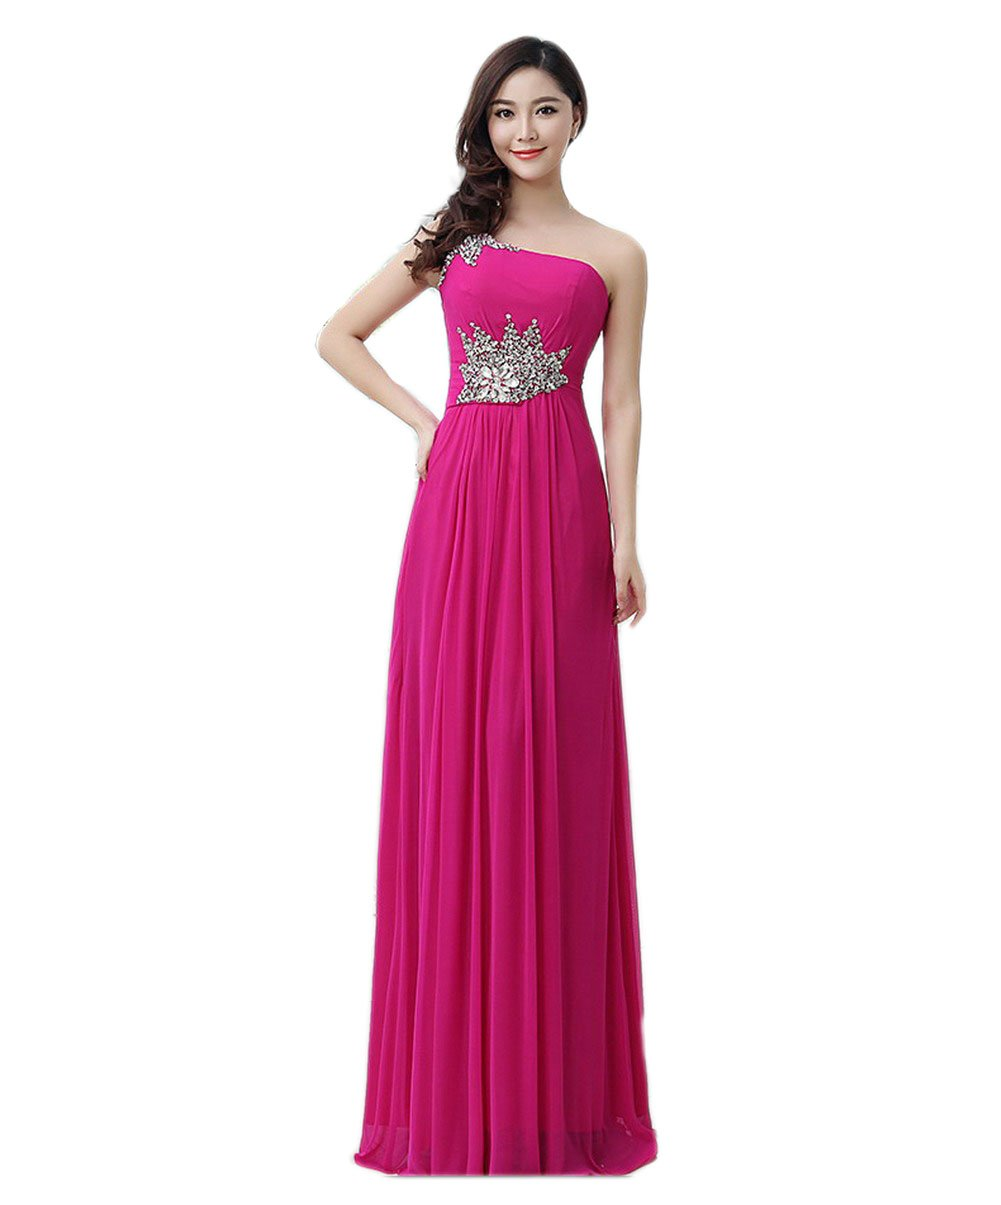 VogueZone009 Womens Sleeveless Chiffon Formal Dresses with Glass Diamond, Rosered, 18W by VogueZone009